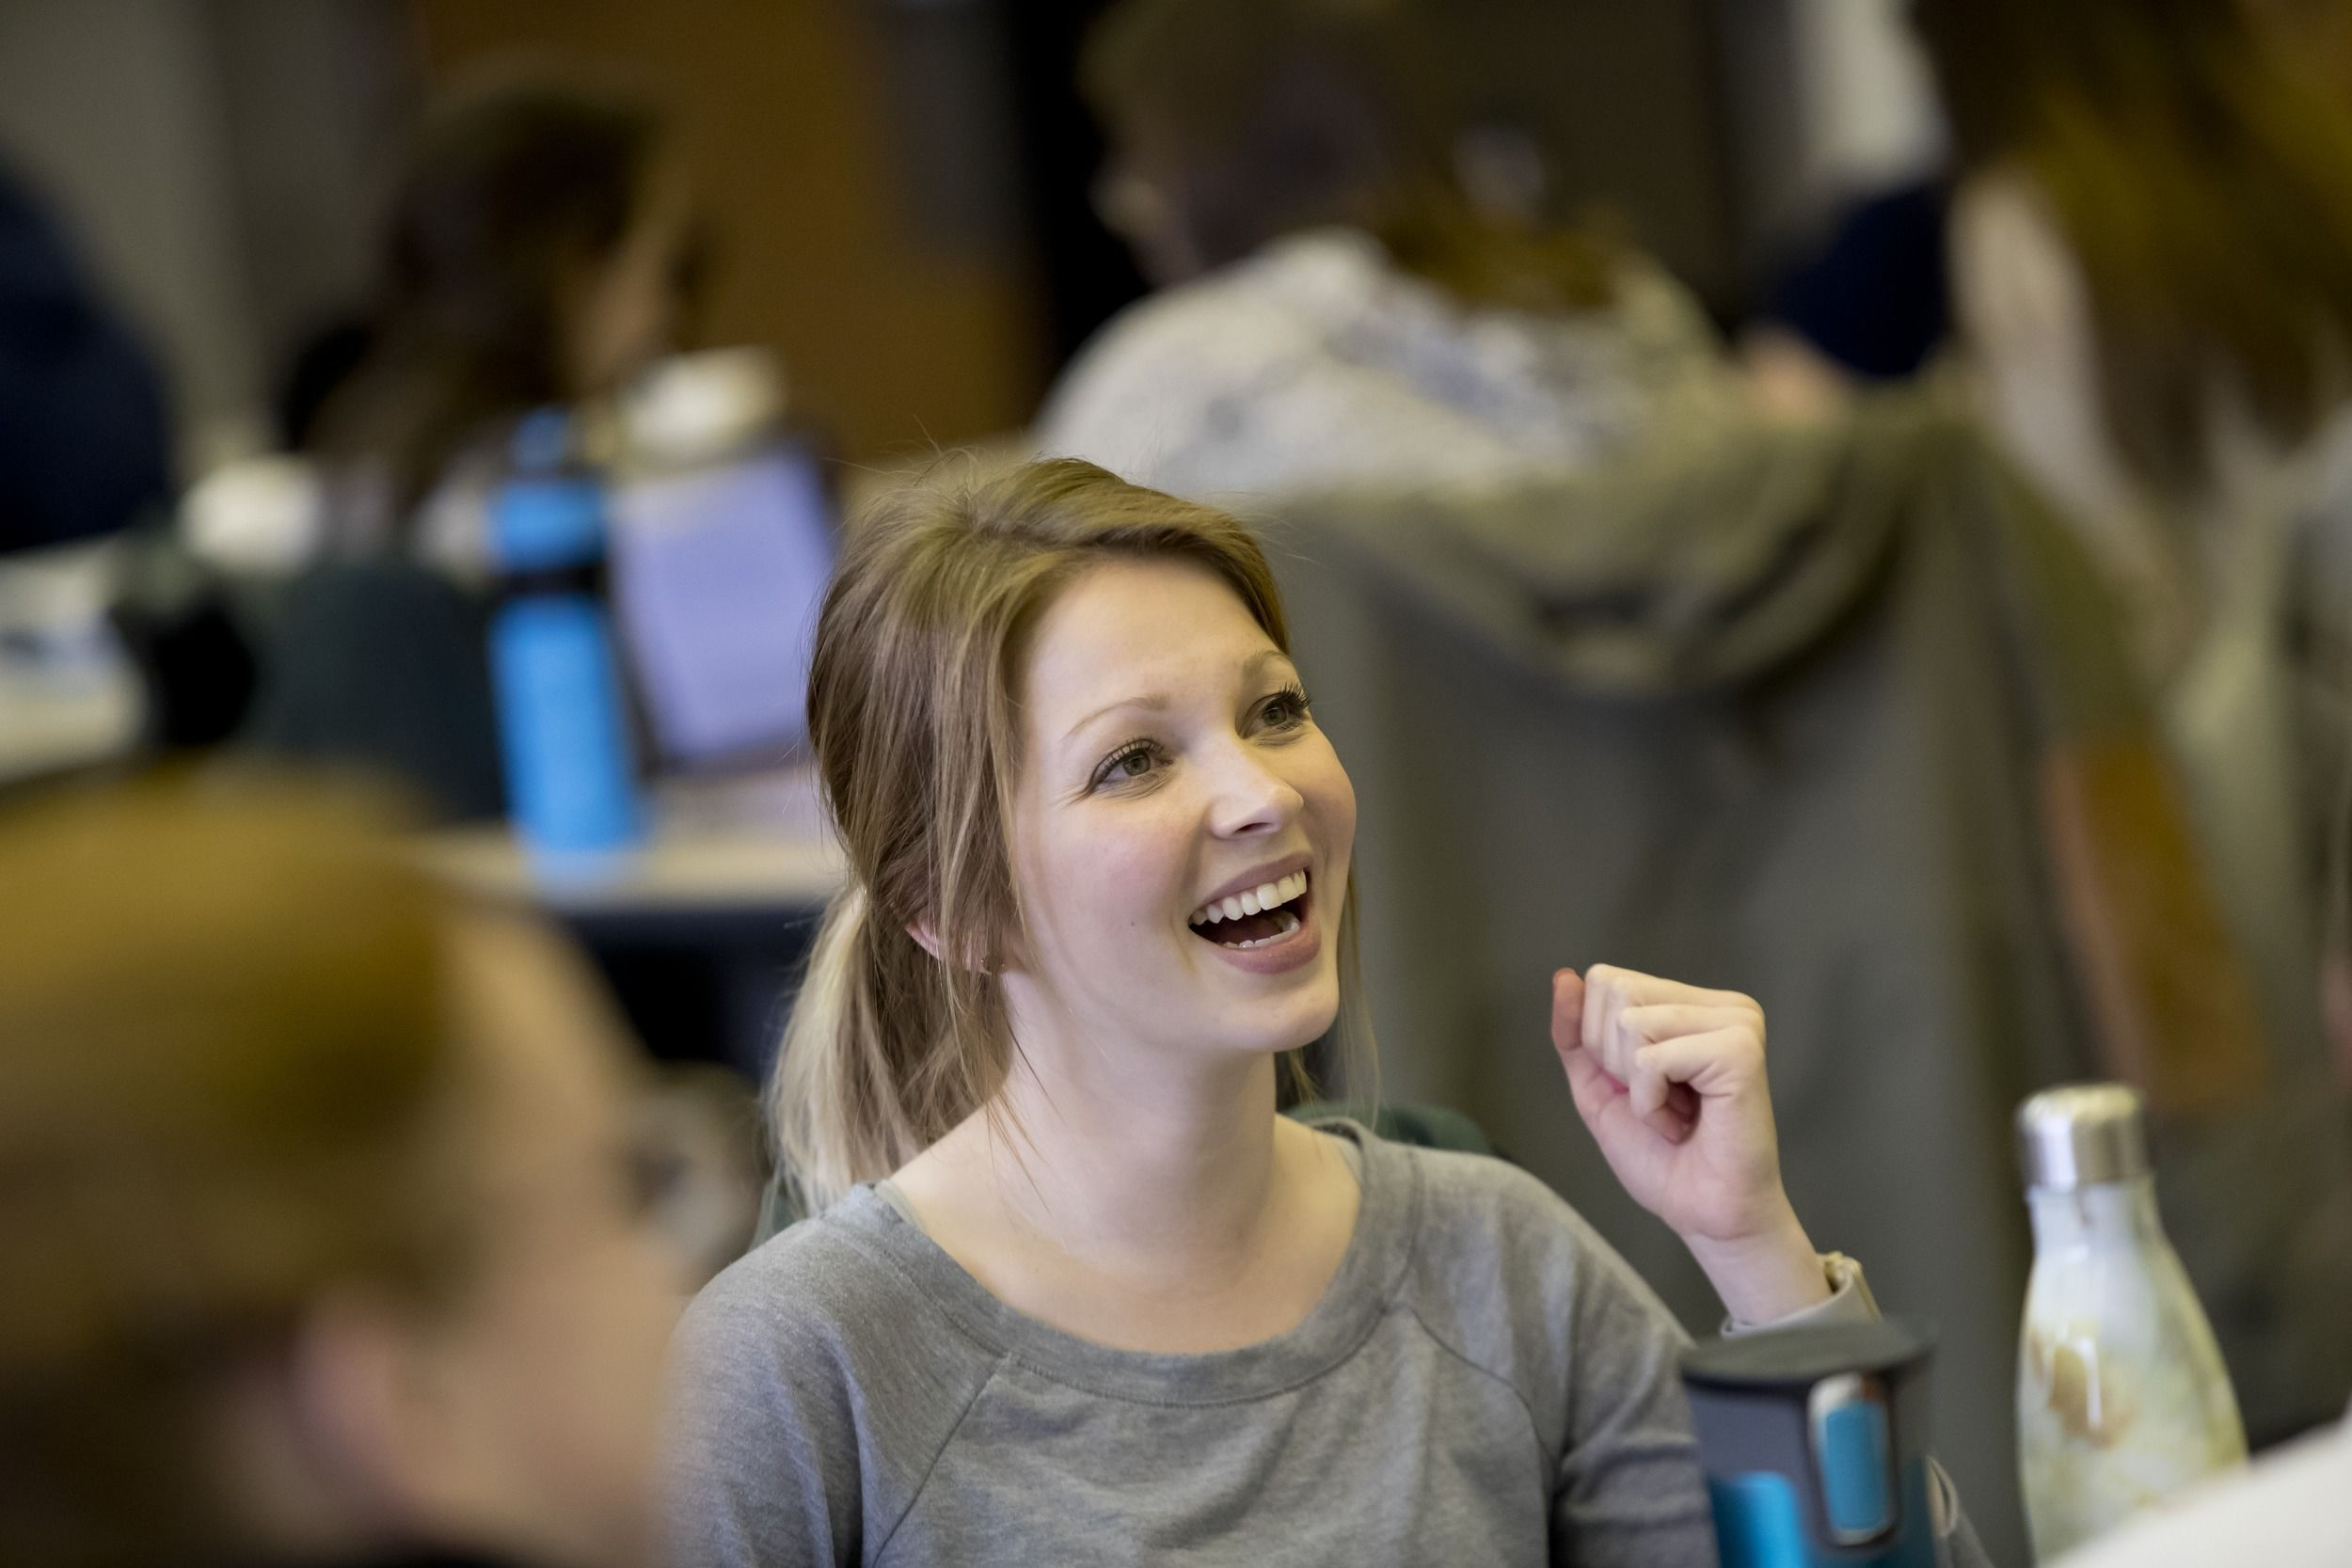 College of Public Health students talk during class.